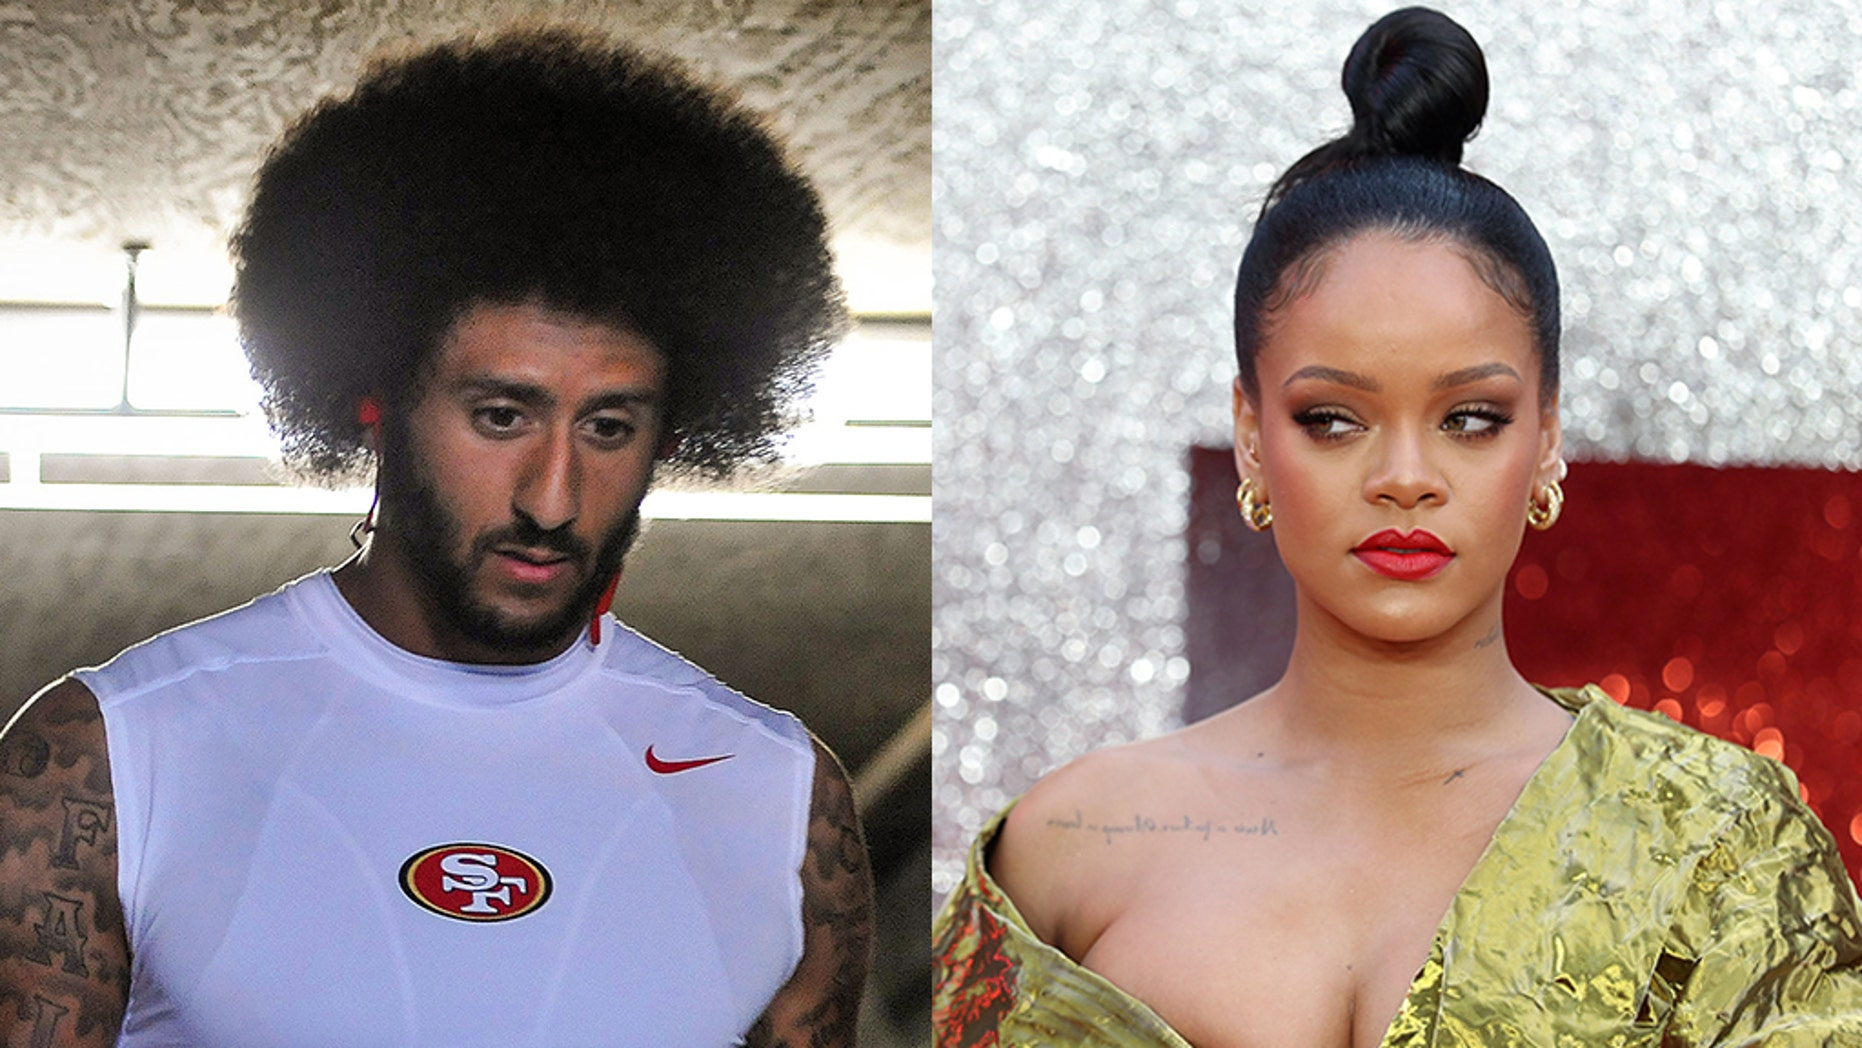 Rihanna Turns Down Super Bowl to Support Kaepernick